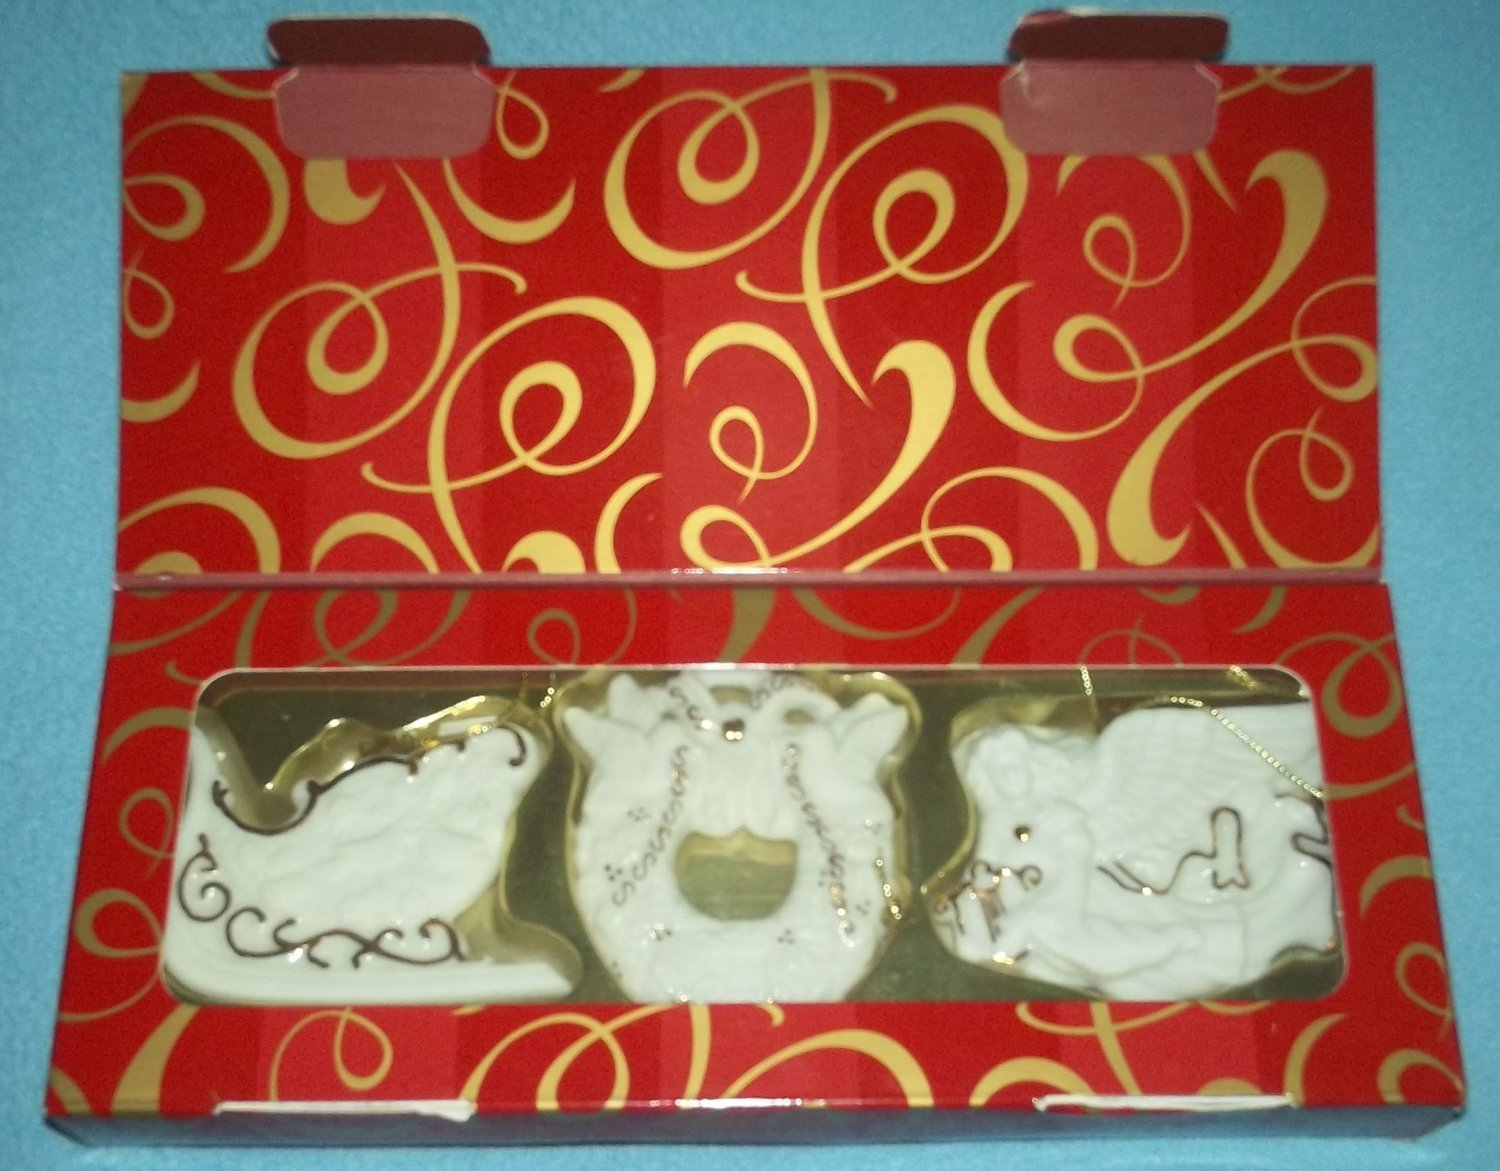 AVON CHRISTMAS ORNAMENTS BISQUE 24 kt gold 2001 ANGEL WREATH SLED